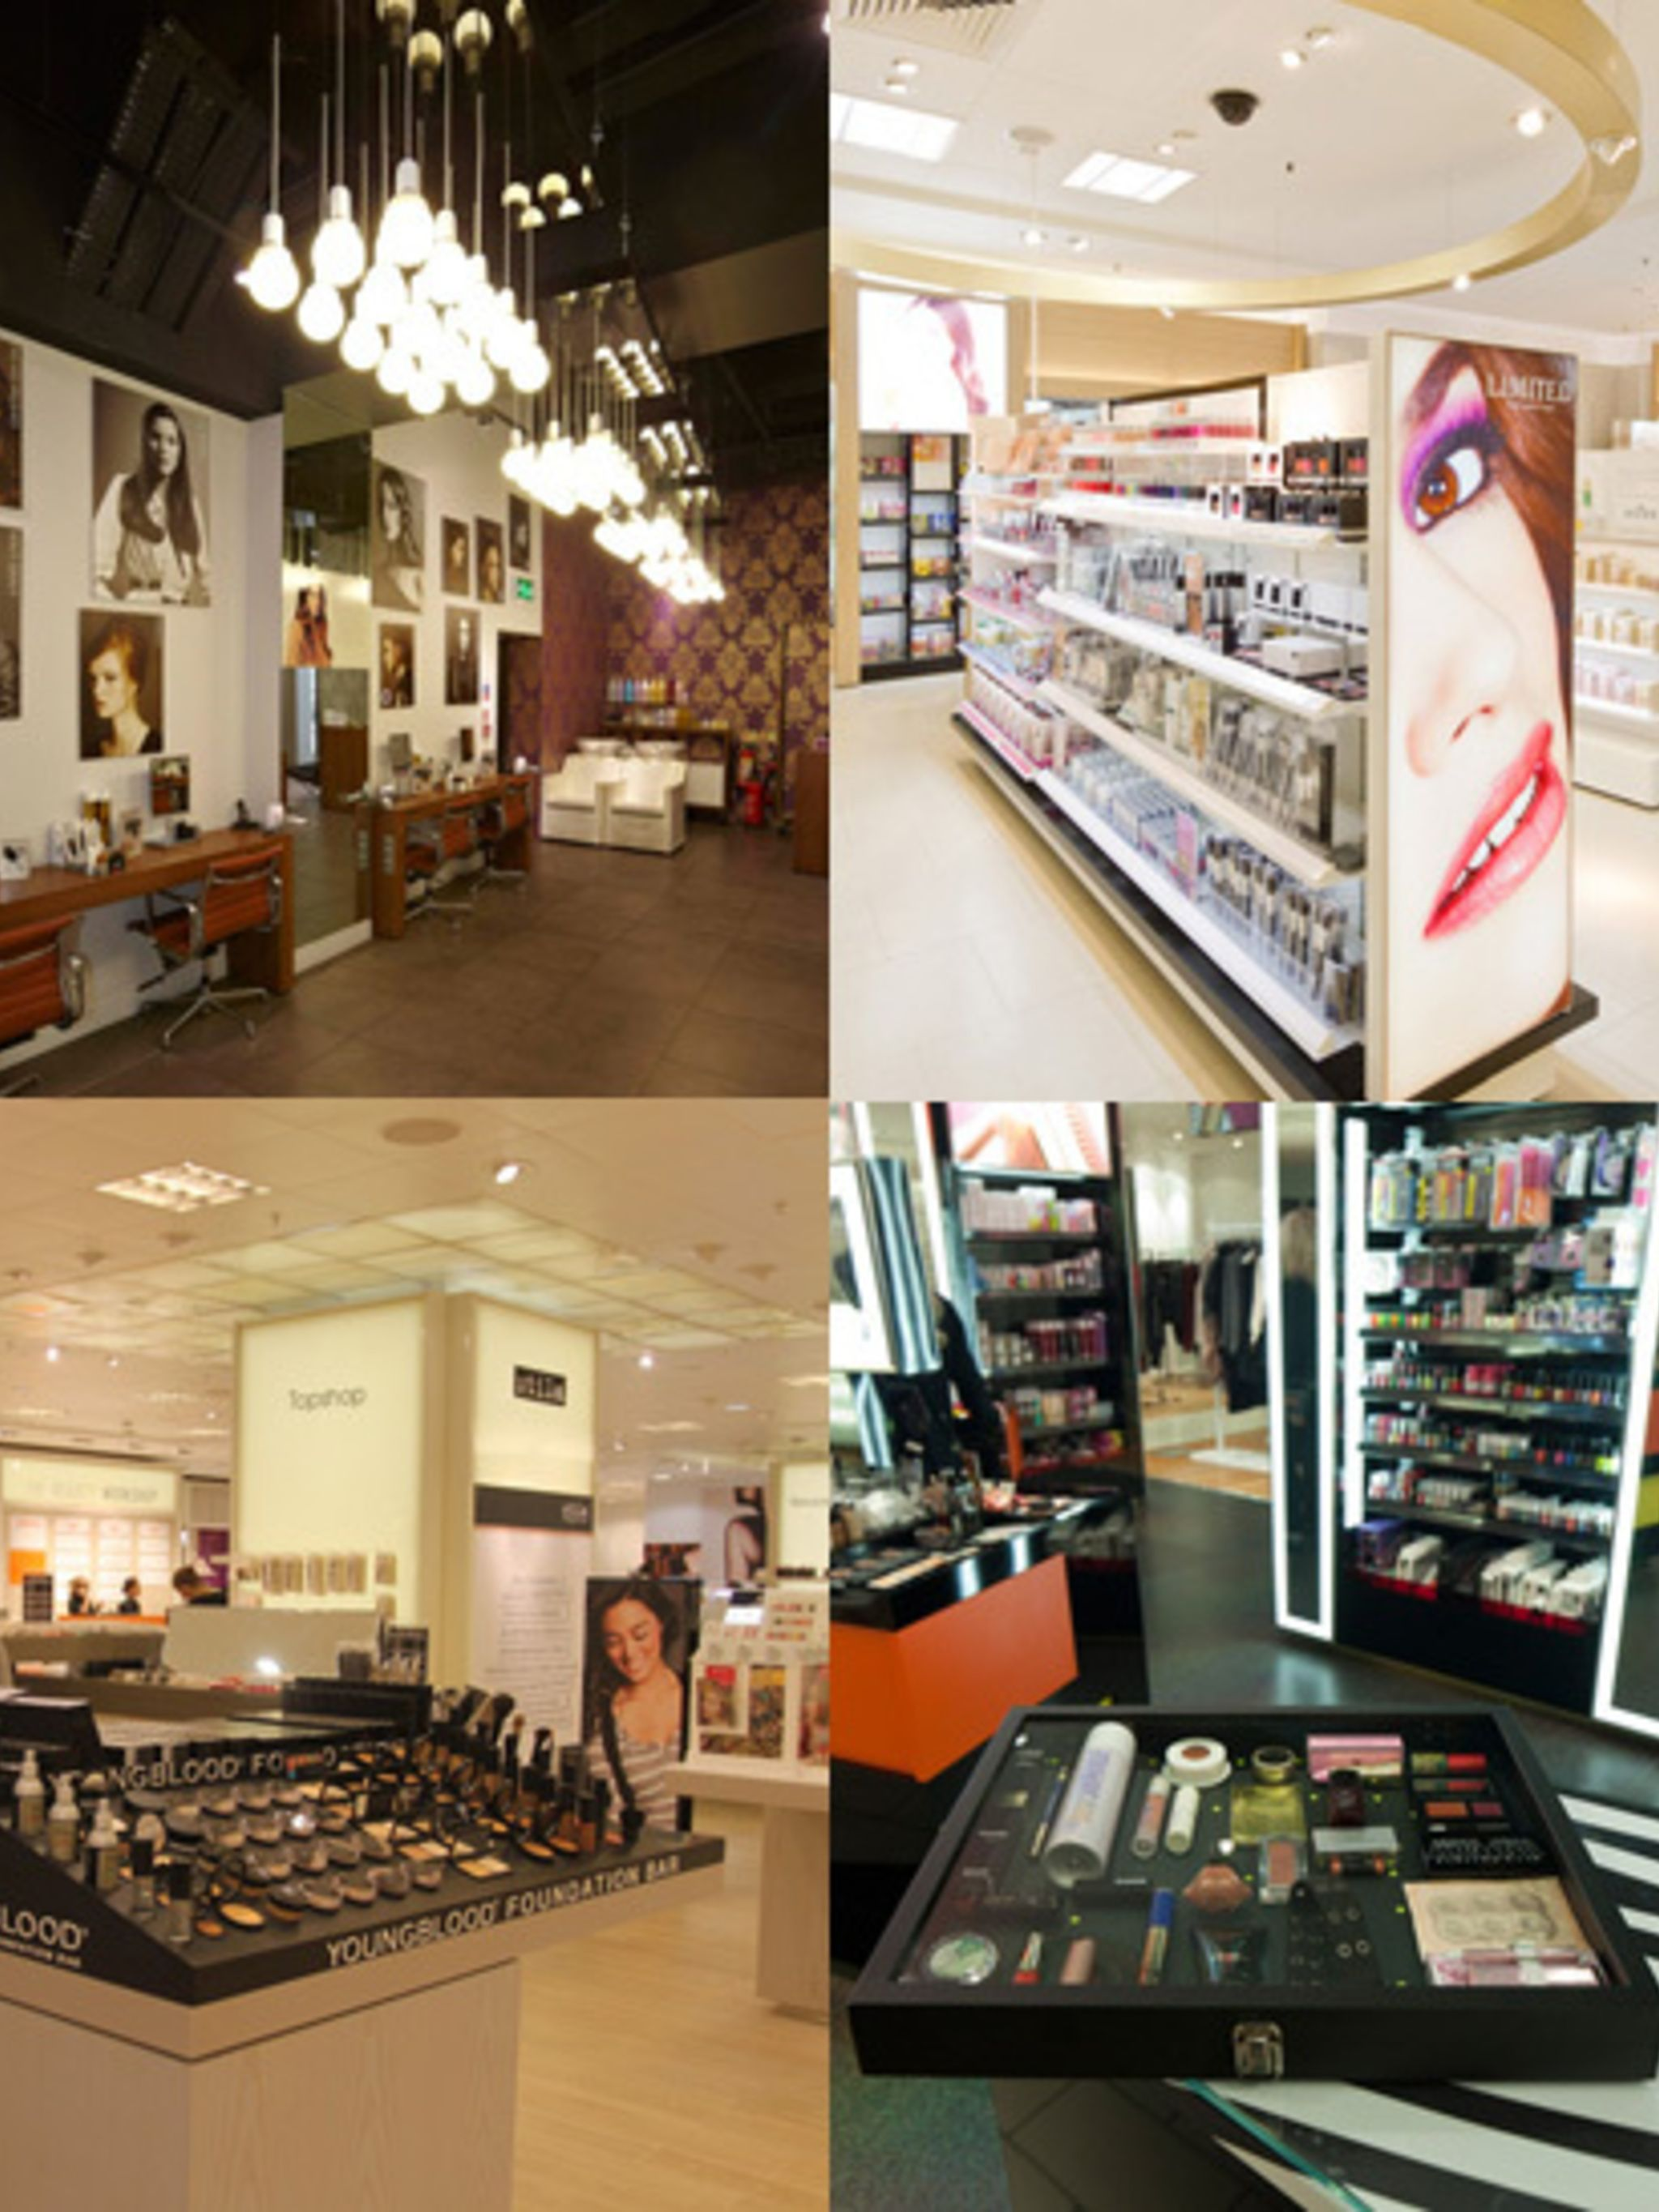 <p>With 1 in 5 women buying all their beauty products online and the rest starting to go that way, traditional beauty halls are pulling out all the stops to get us back into their mecca. From independent beauty advisors and foundation matching devices to